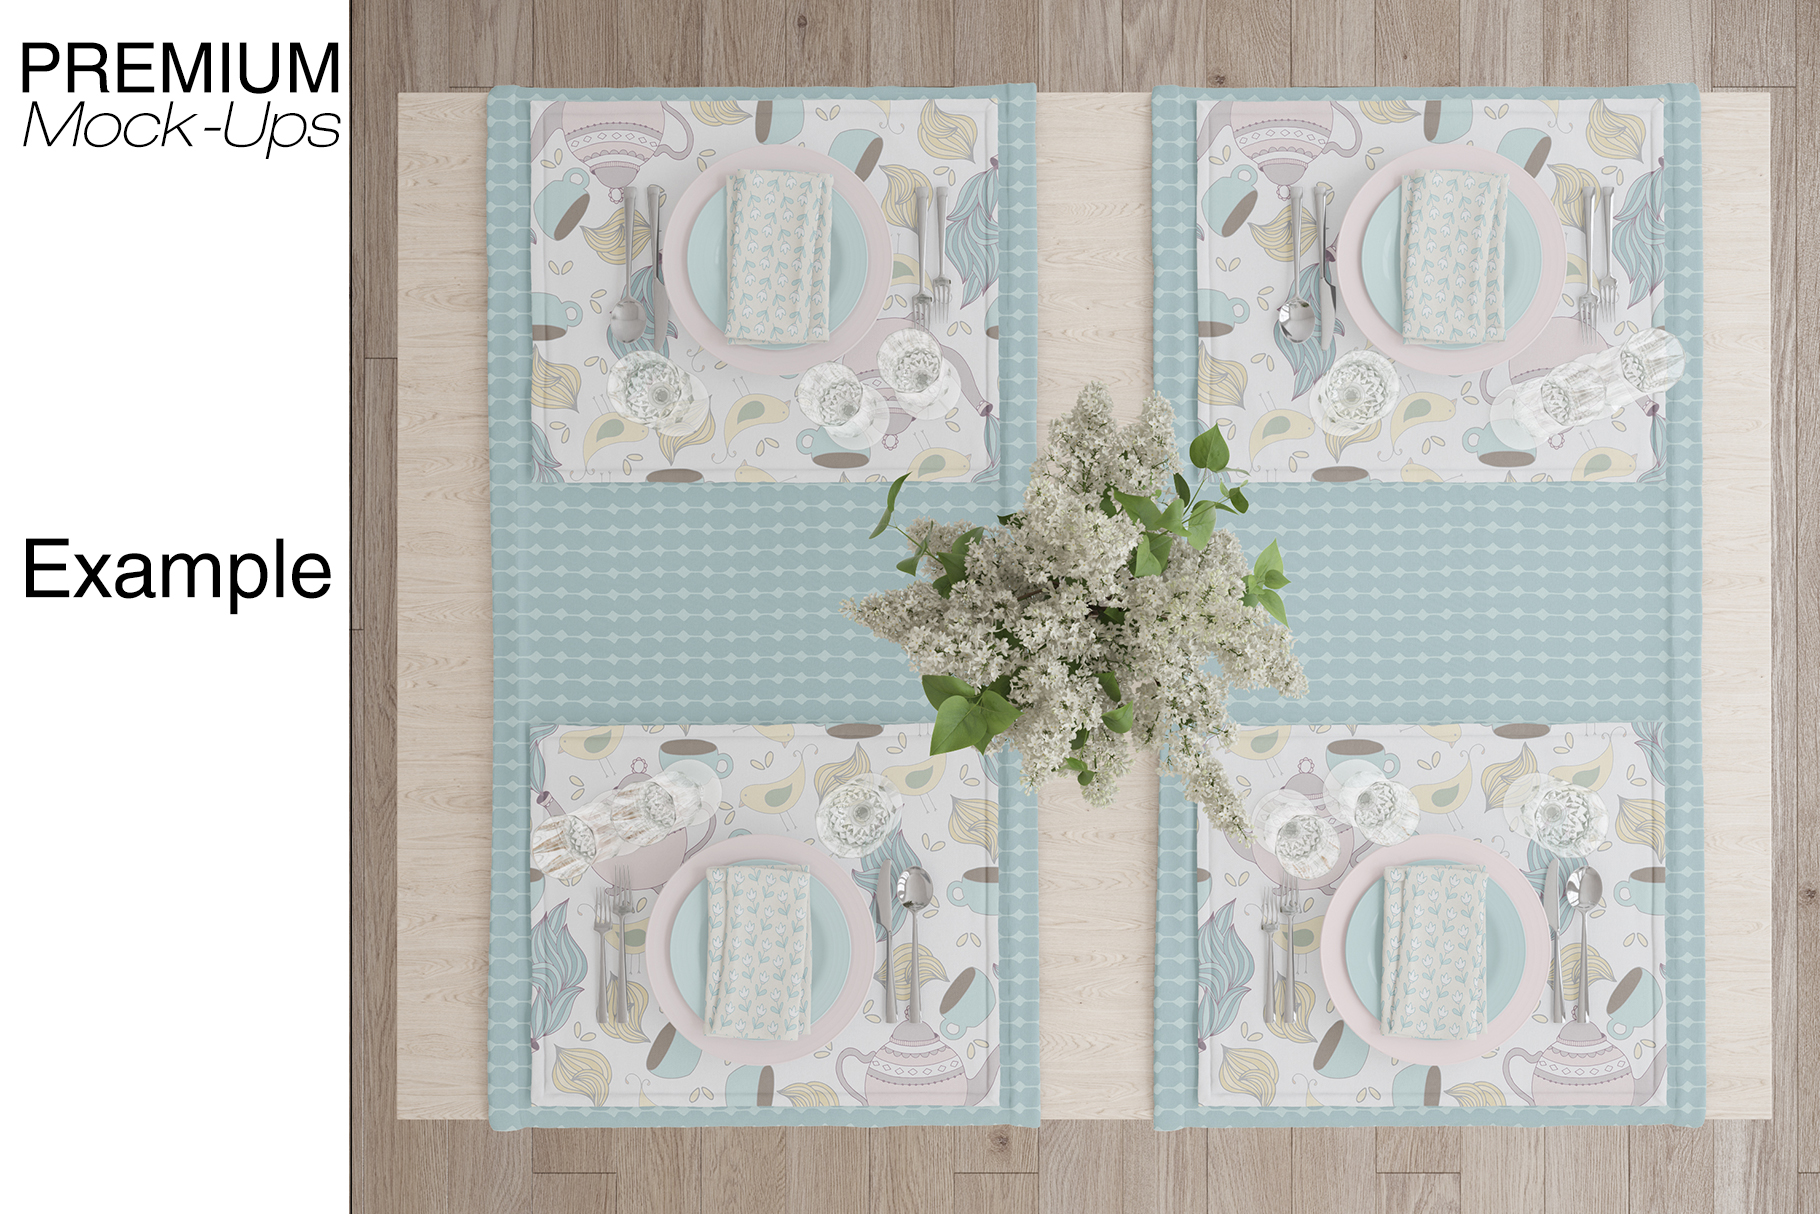 Tablecloth, Runner, Napkins & Plates example image 8